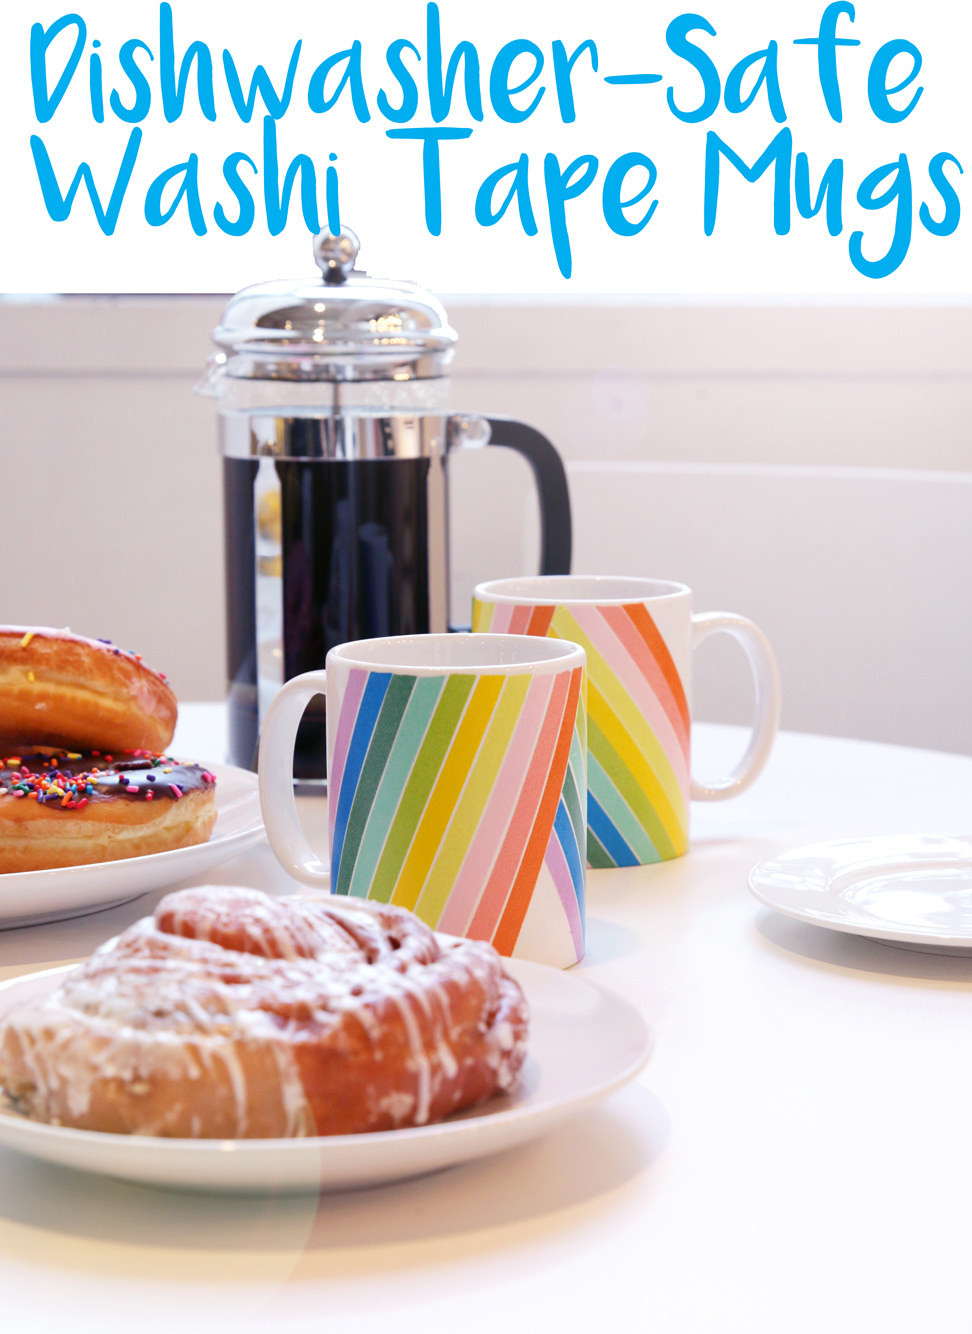 Tape Brunch These Washi Envy Friends Your Give Major Will Mugs 0vNmwn8